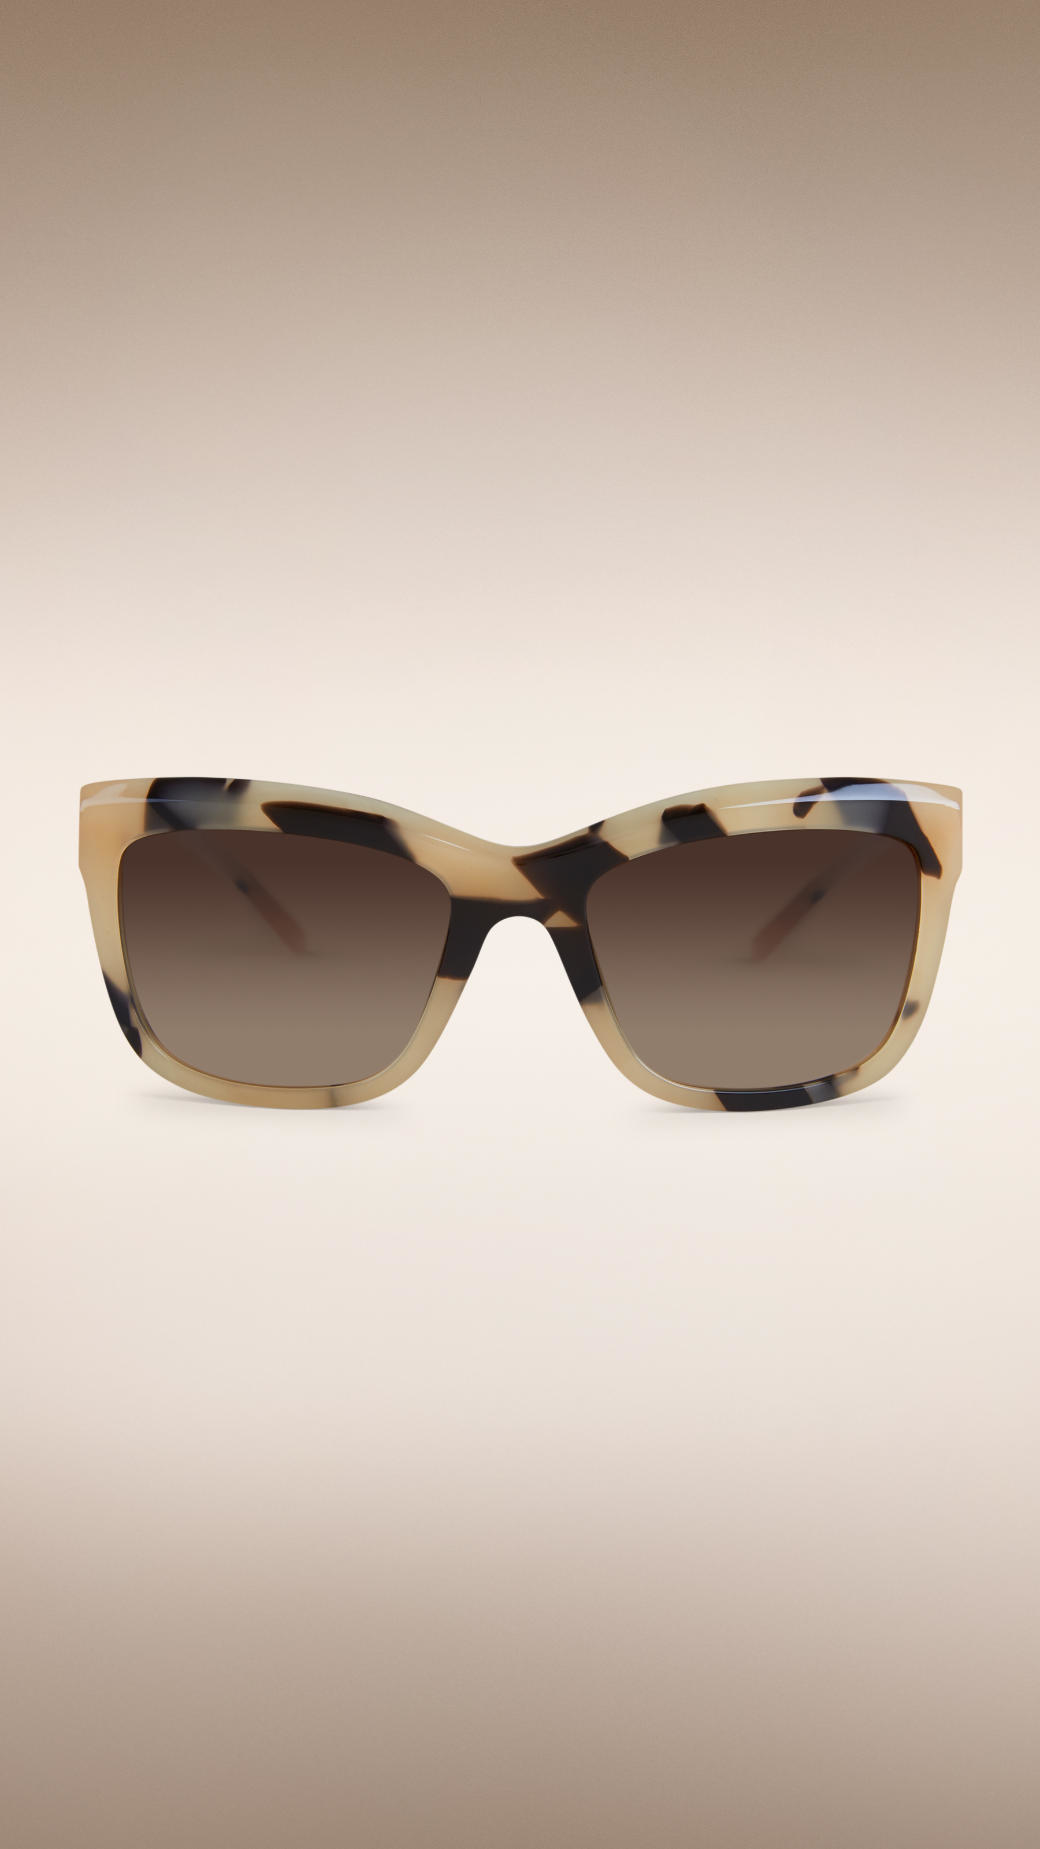 6731873f00 Burberry Gabardine Lace Collection Square Frame Sunglasses in ...